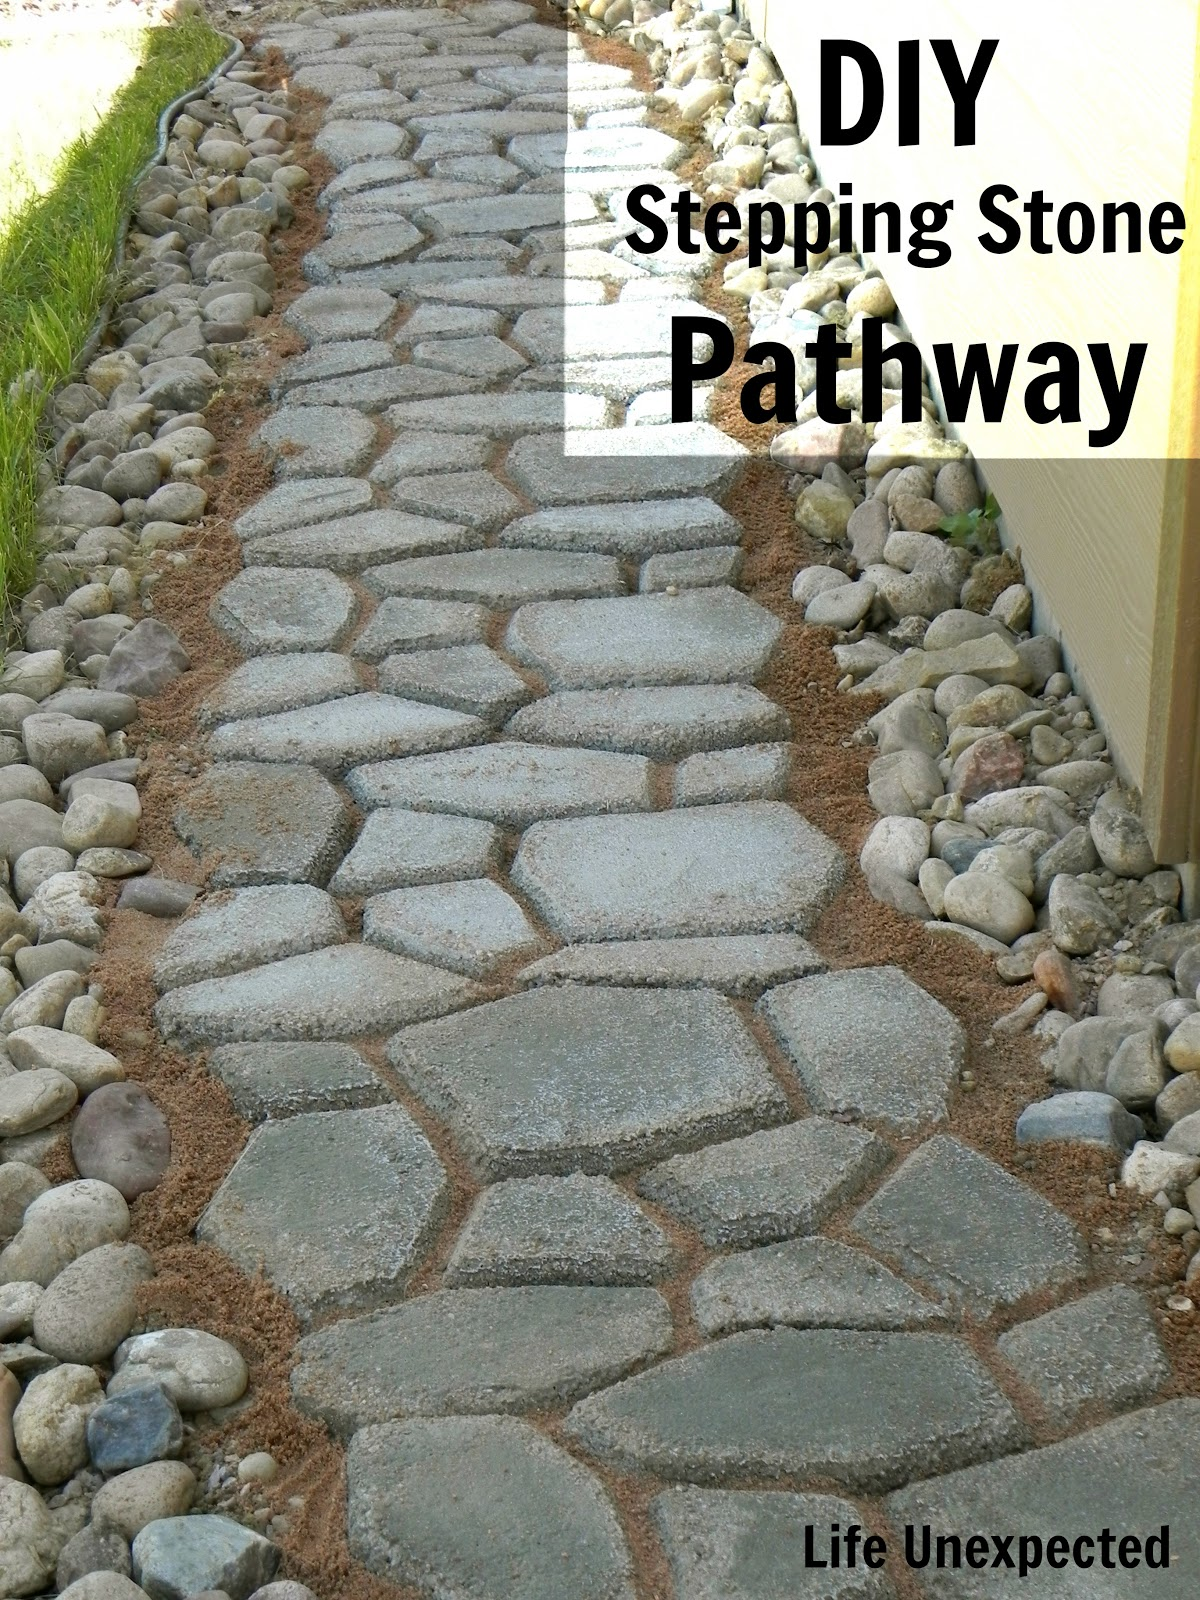 life unexpected diy stepping stone pathway. Black Bedroom Furniture Sets. Home Design Ideas